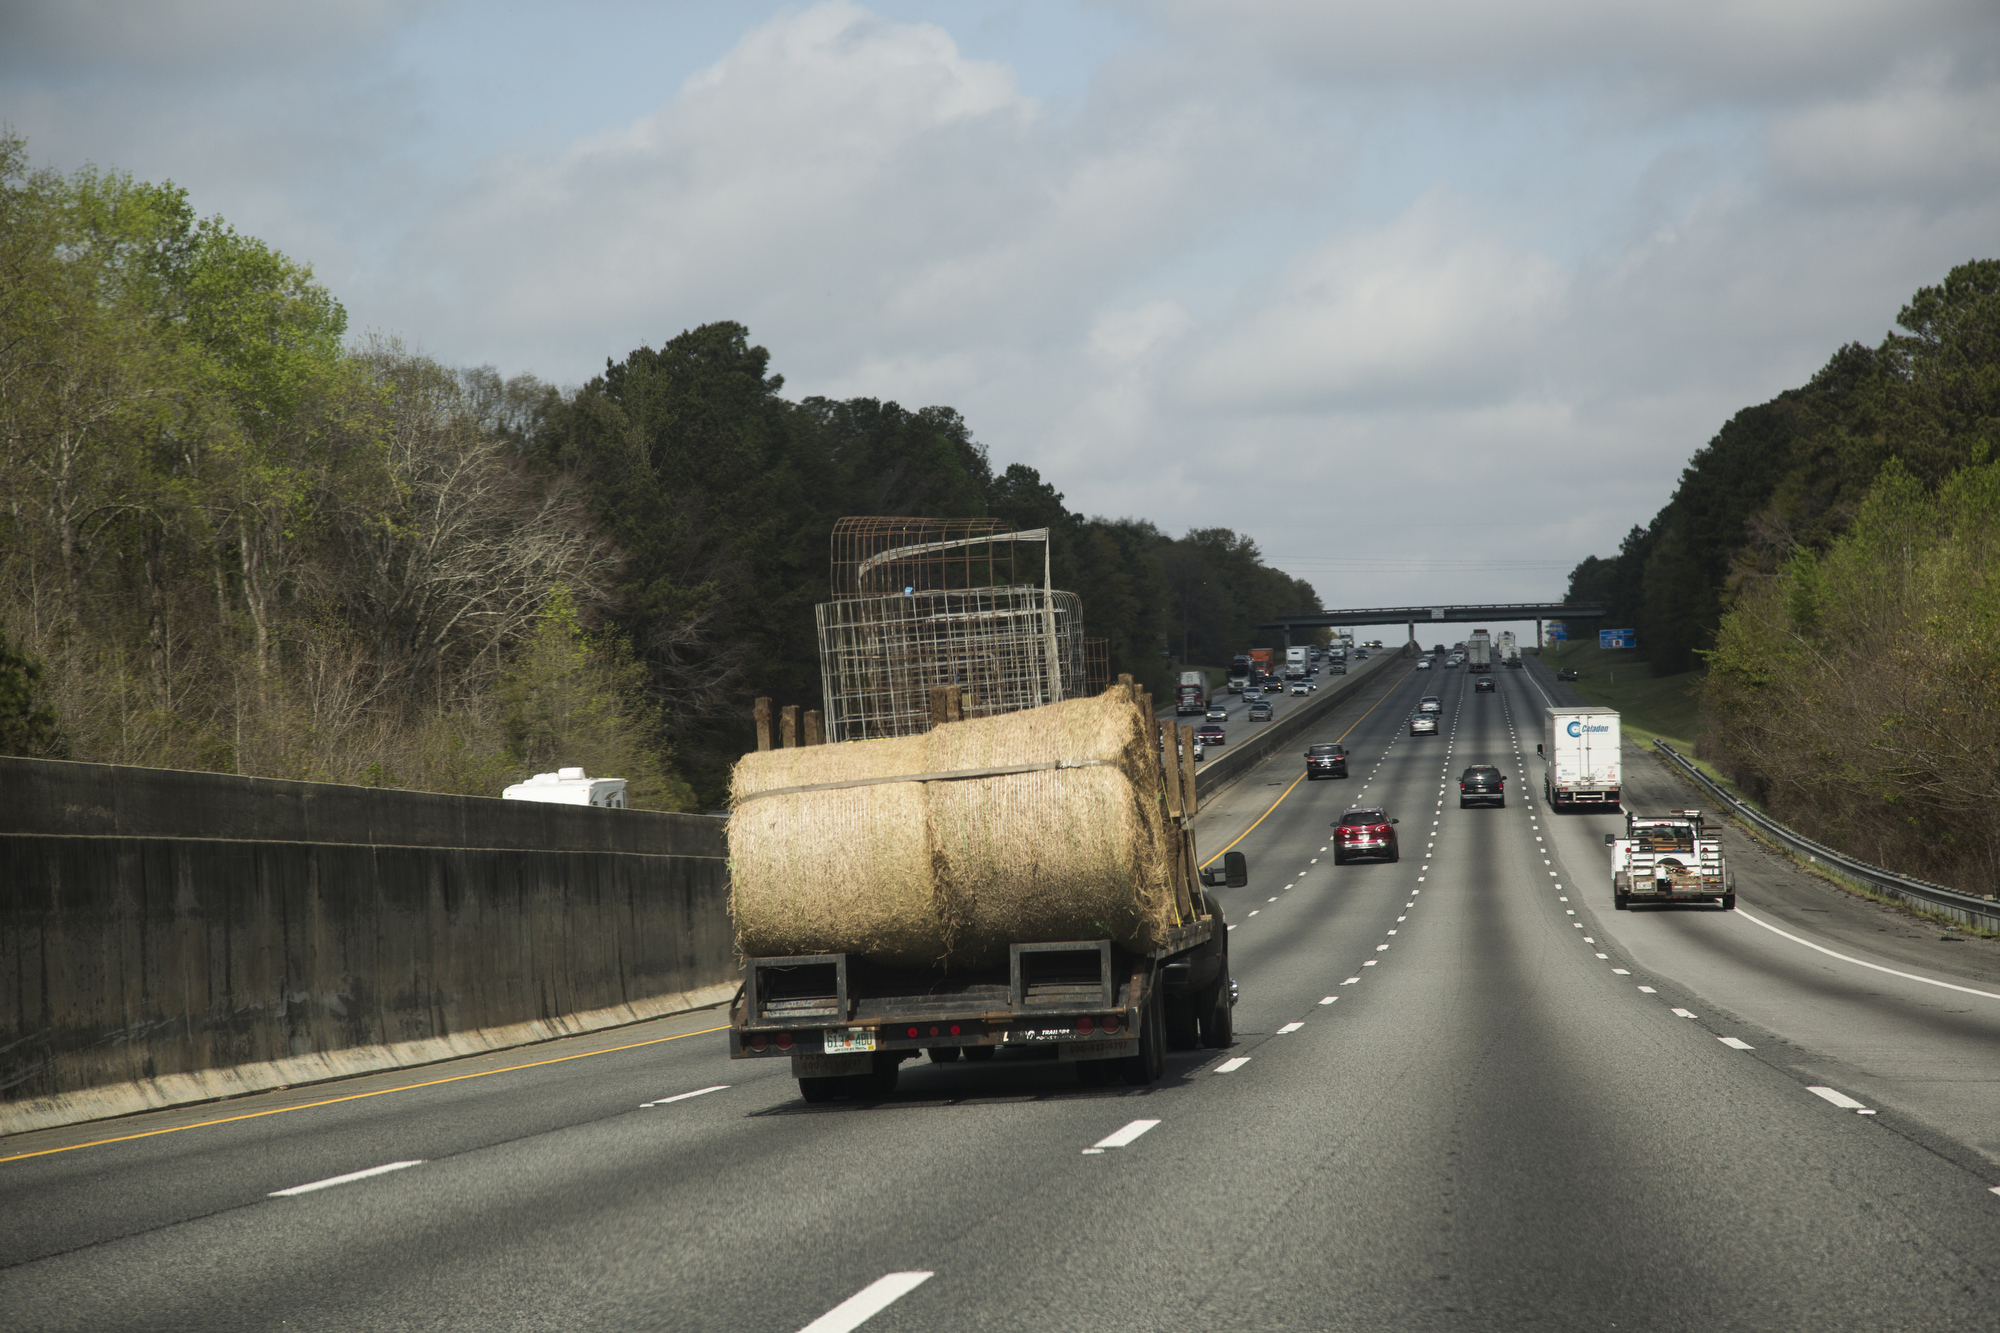 Sammy Busciglio drives a truck loaded with feed troughs, calf pins and bales of hay north on I-75 from Tampa to the new farmland in Gay, Georgia, on March 27, 2017. The new property is 270 acres, and the family hopes to expand their herd.